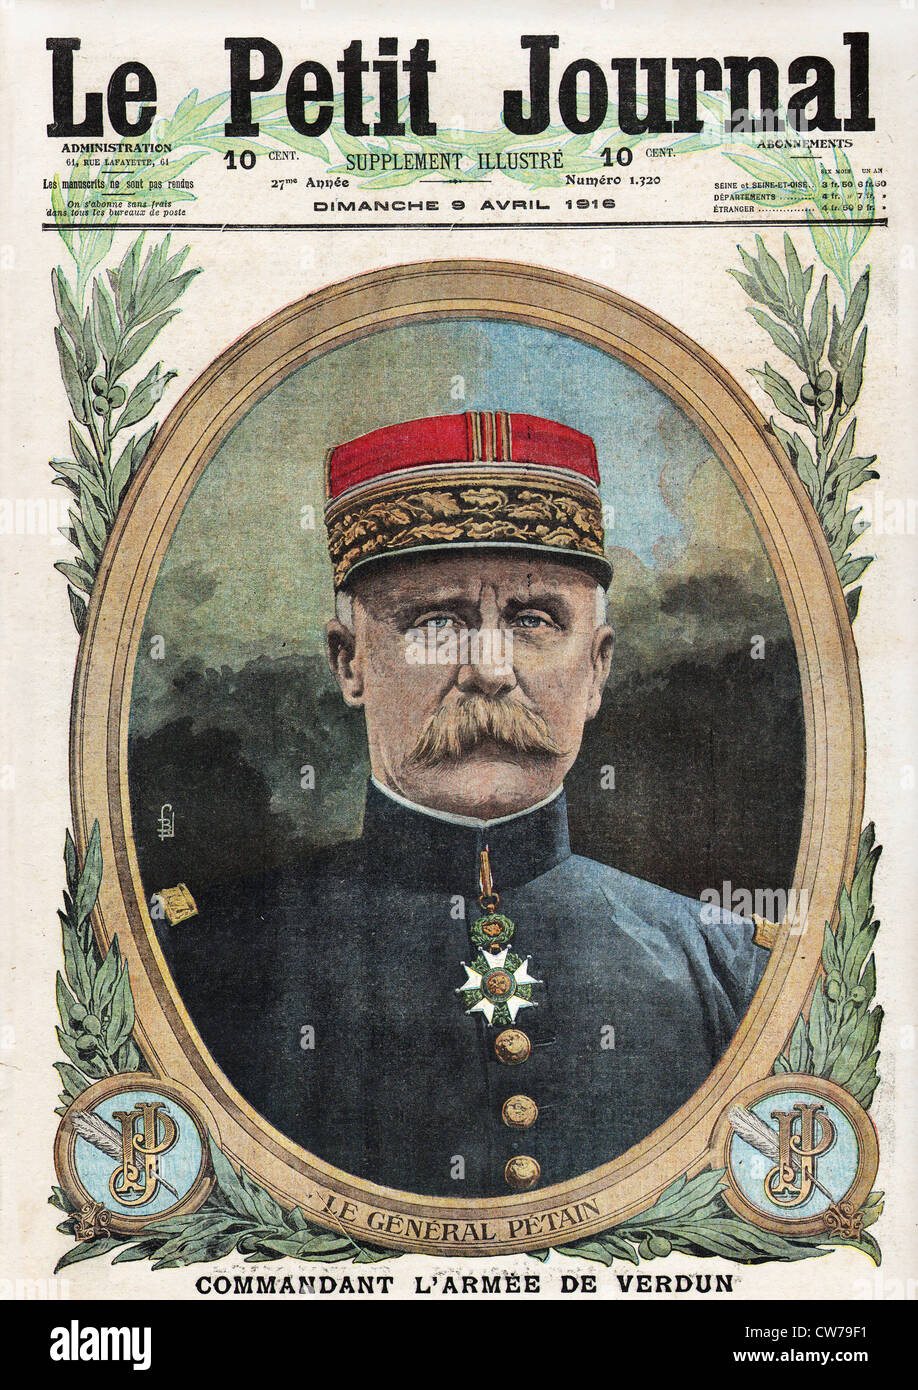 General Petain - Stock Image